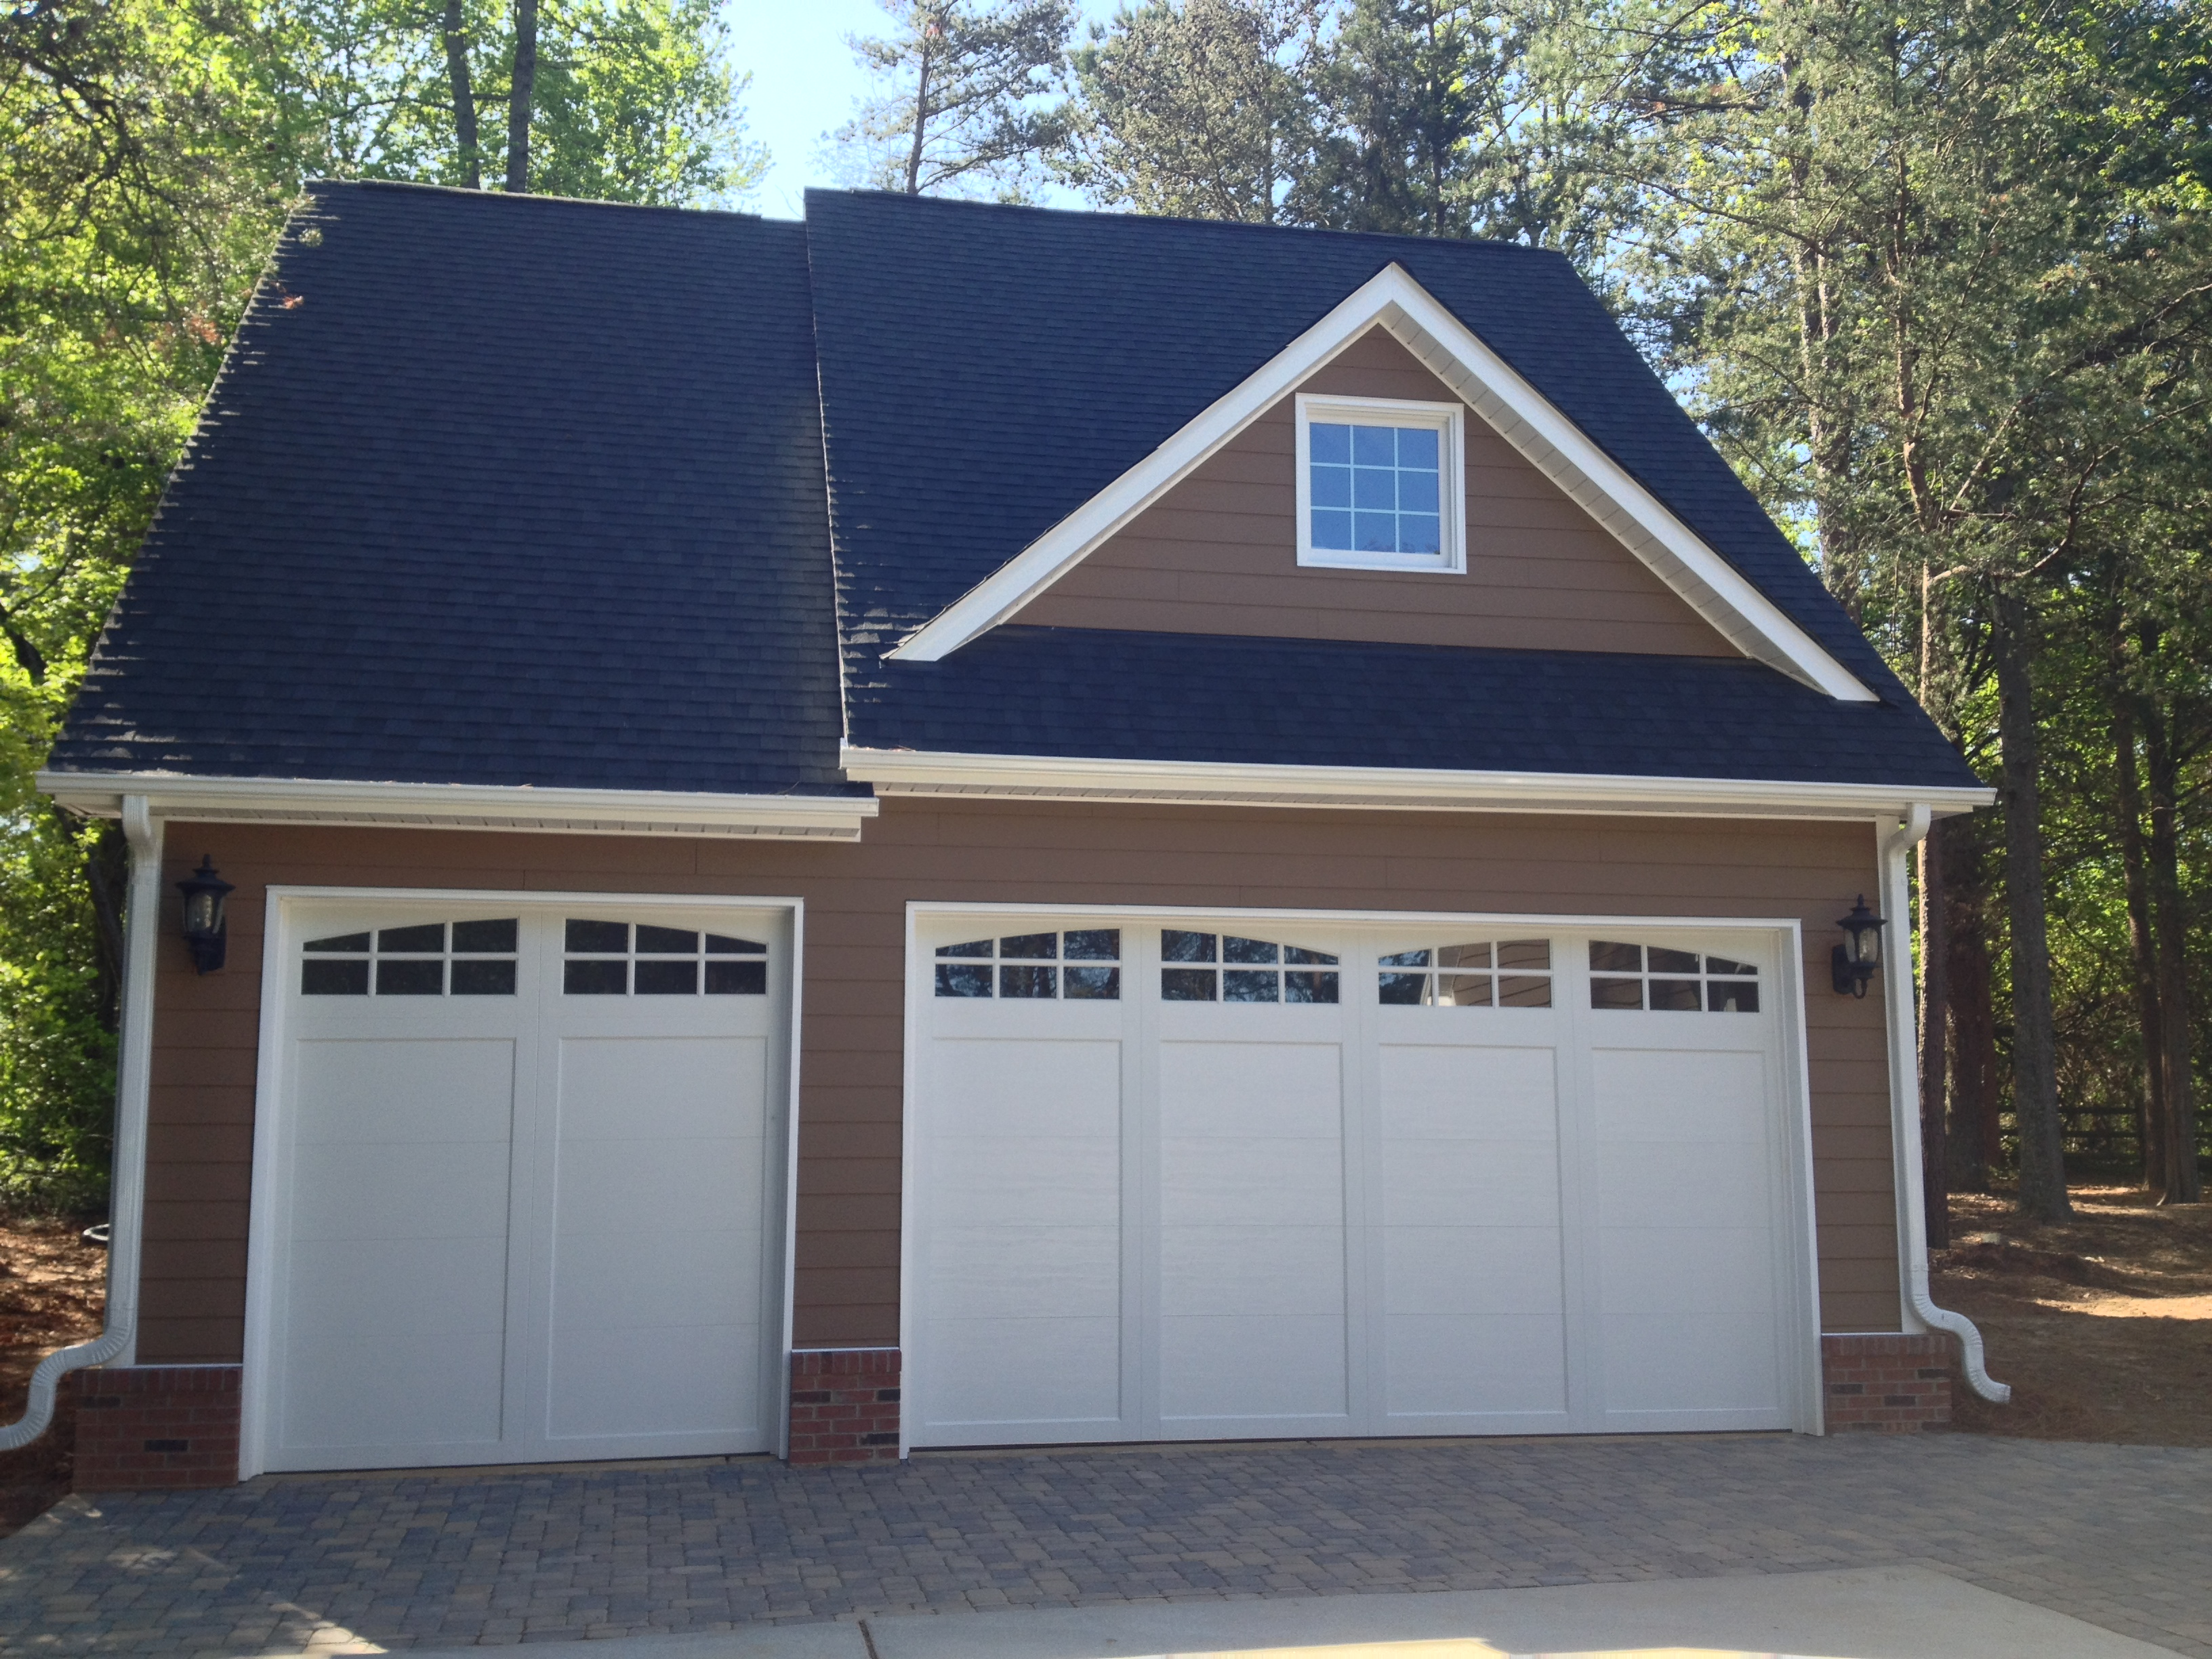 3 car detached garage cornelius nc henderson building for 3 car detached garage cost